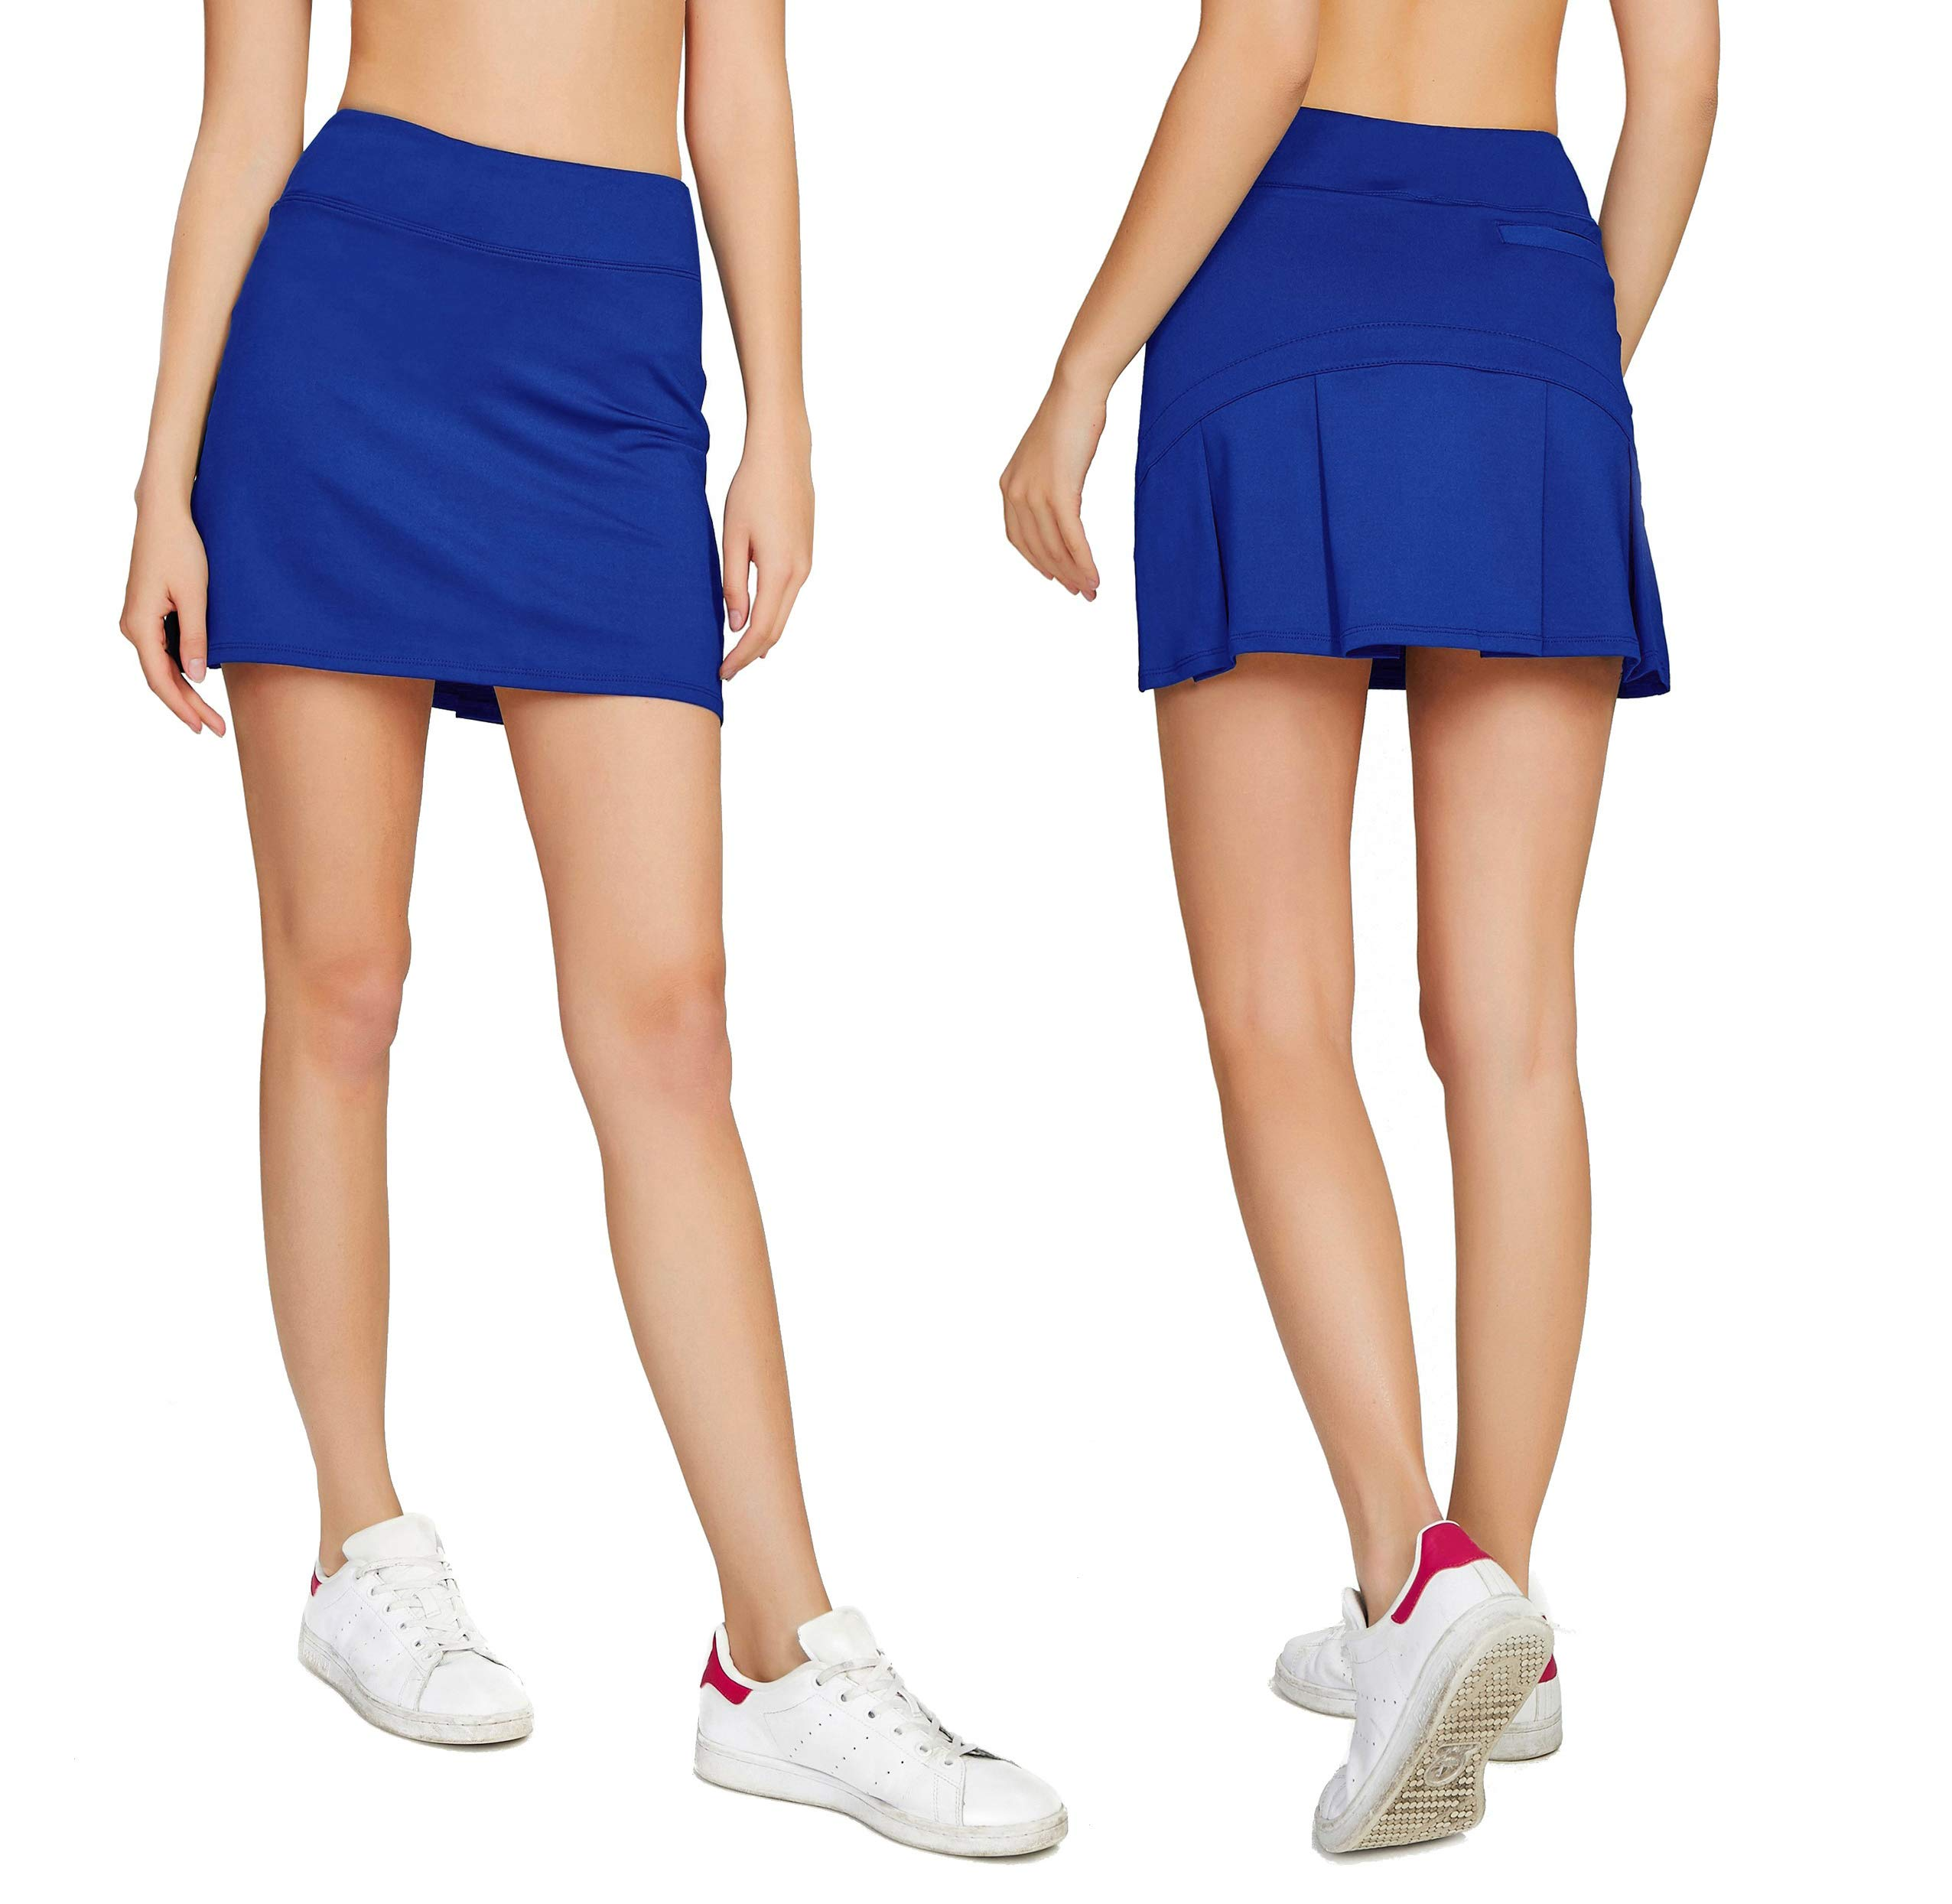 Women's Casual Pleated Tennis Golf Skirt with Underneath Shorts Running Skorts bu xs Blue